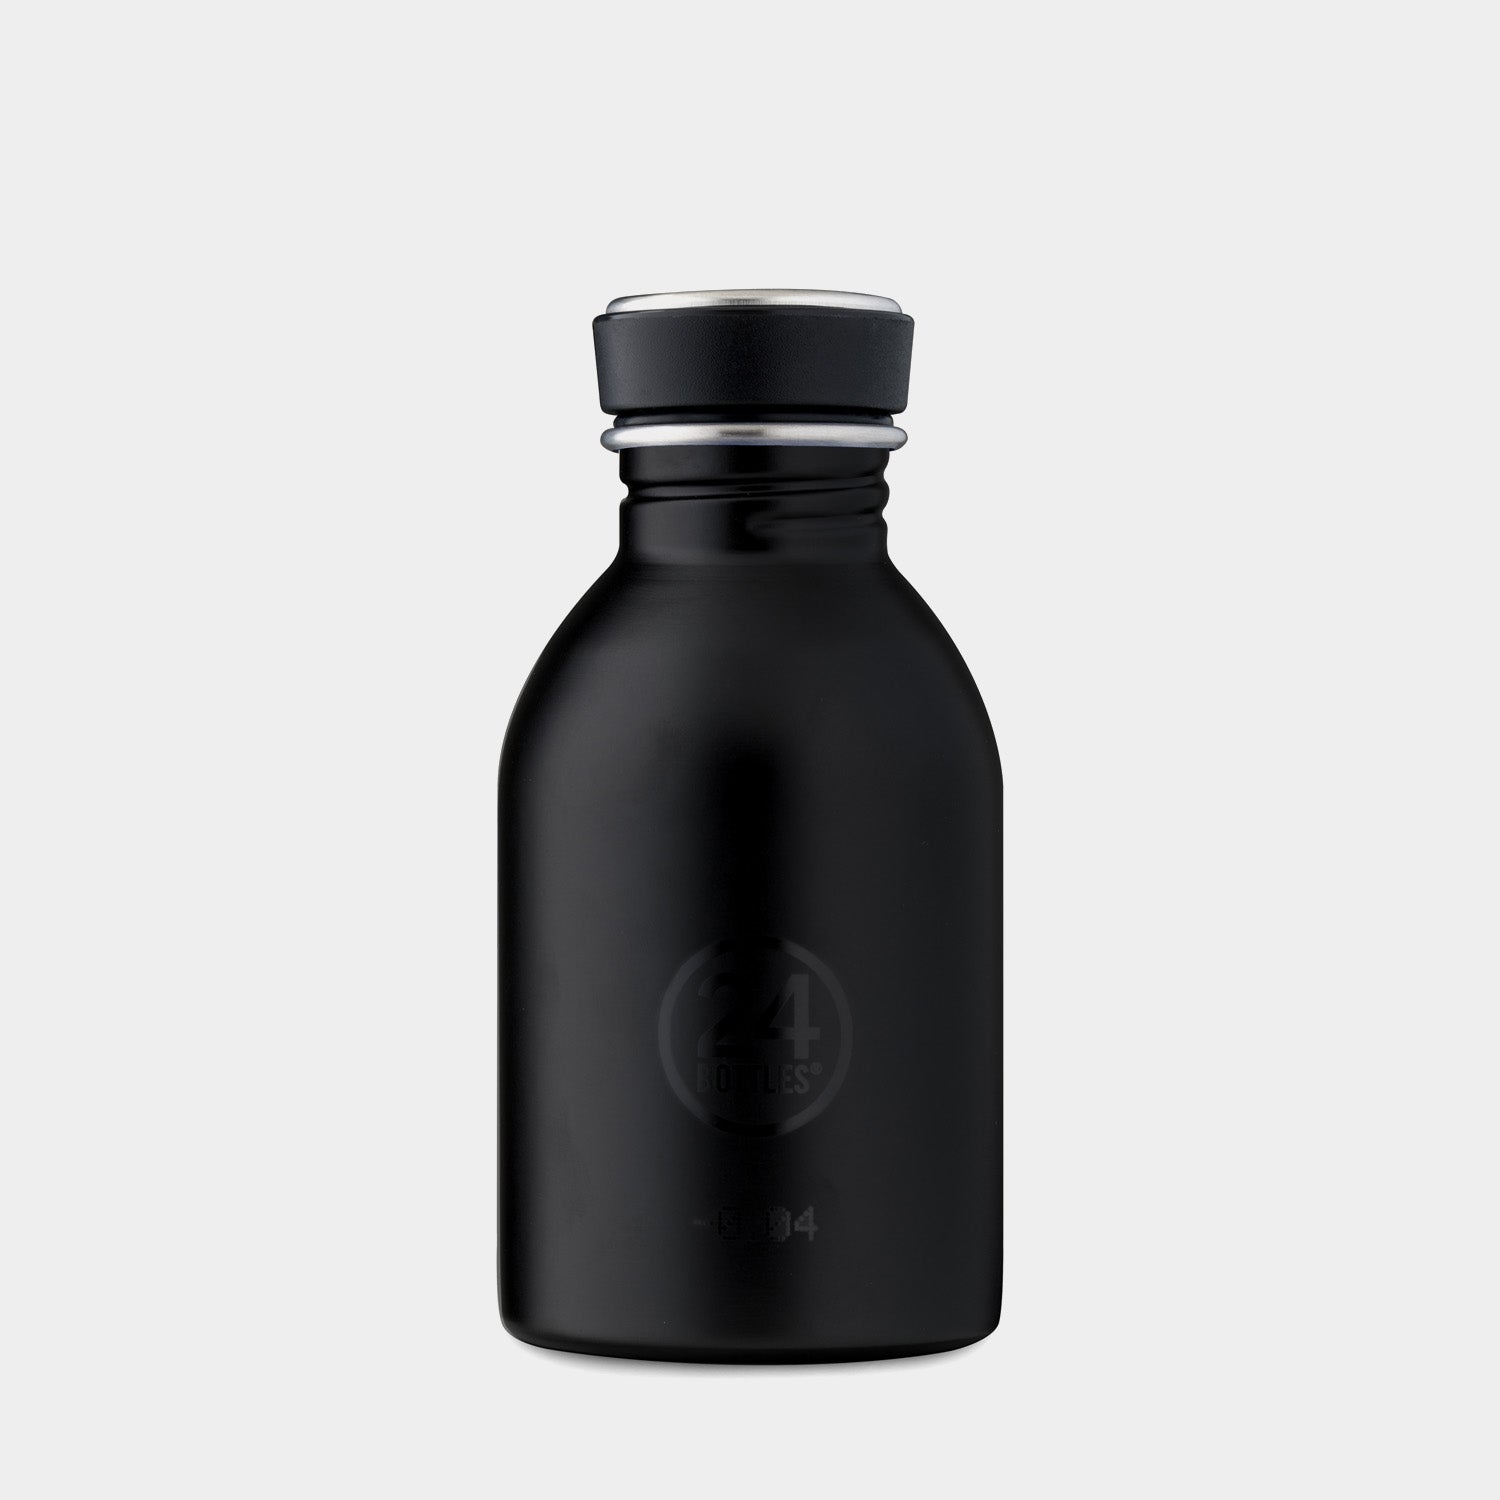 24Bottles Tuxedo Black Urban Bottle - 250ml